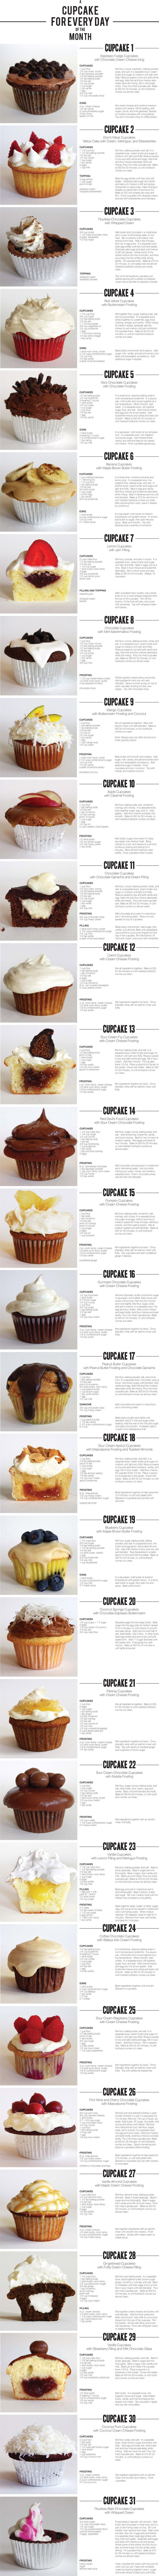 A cupcake for every day of the month #infographic